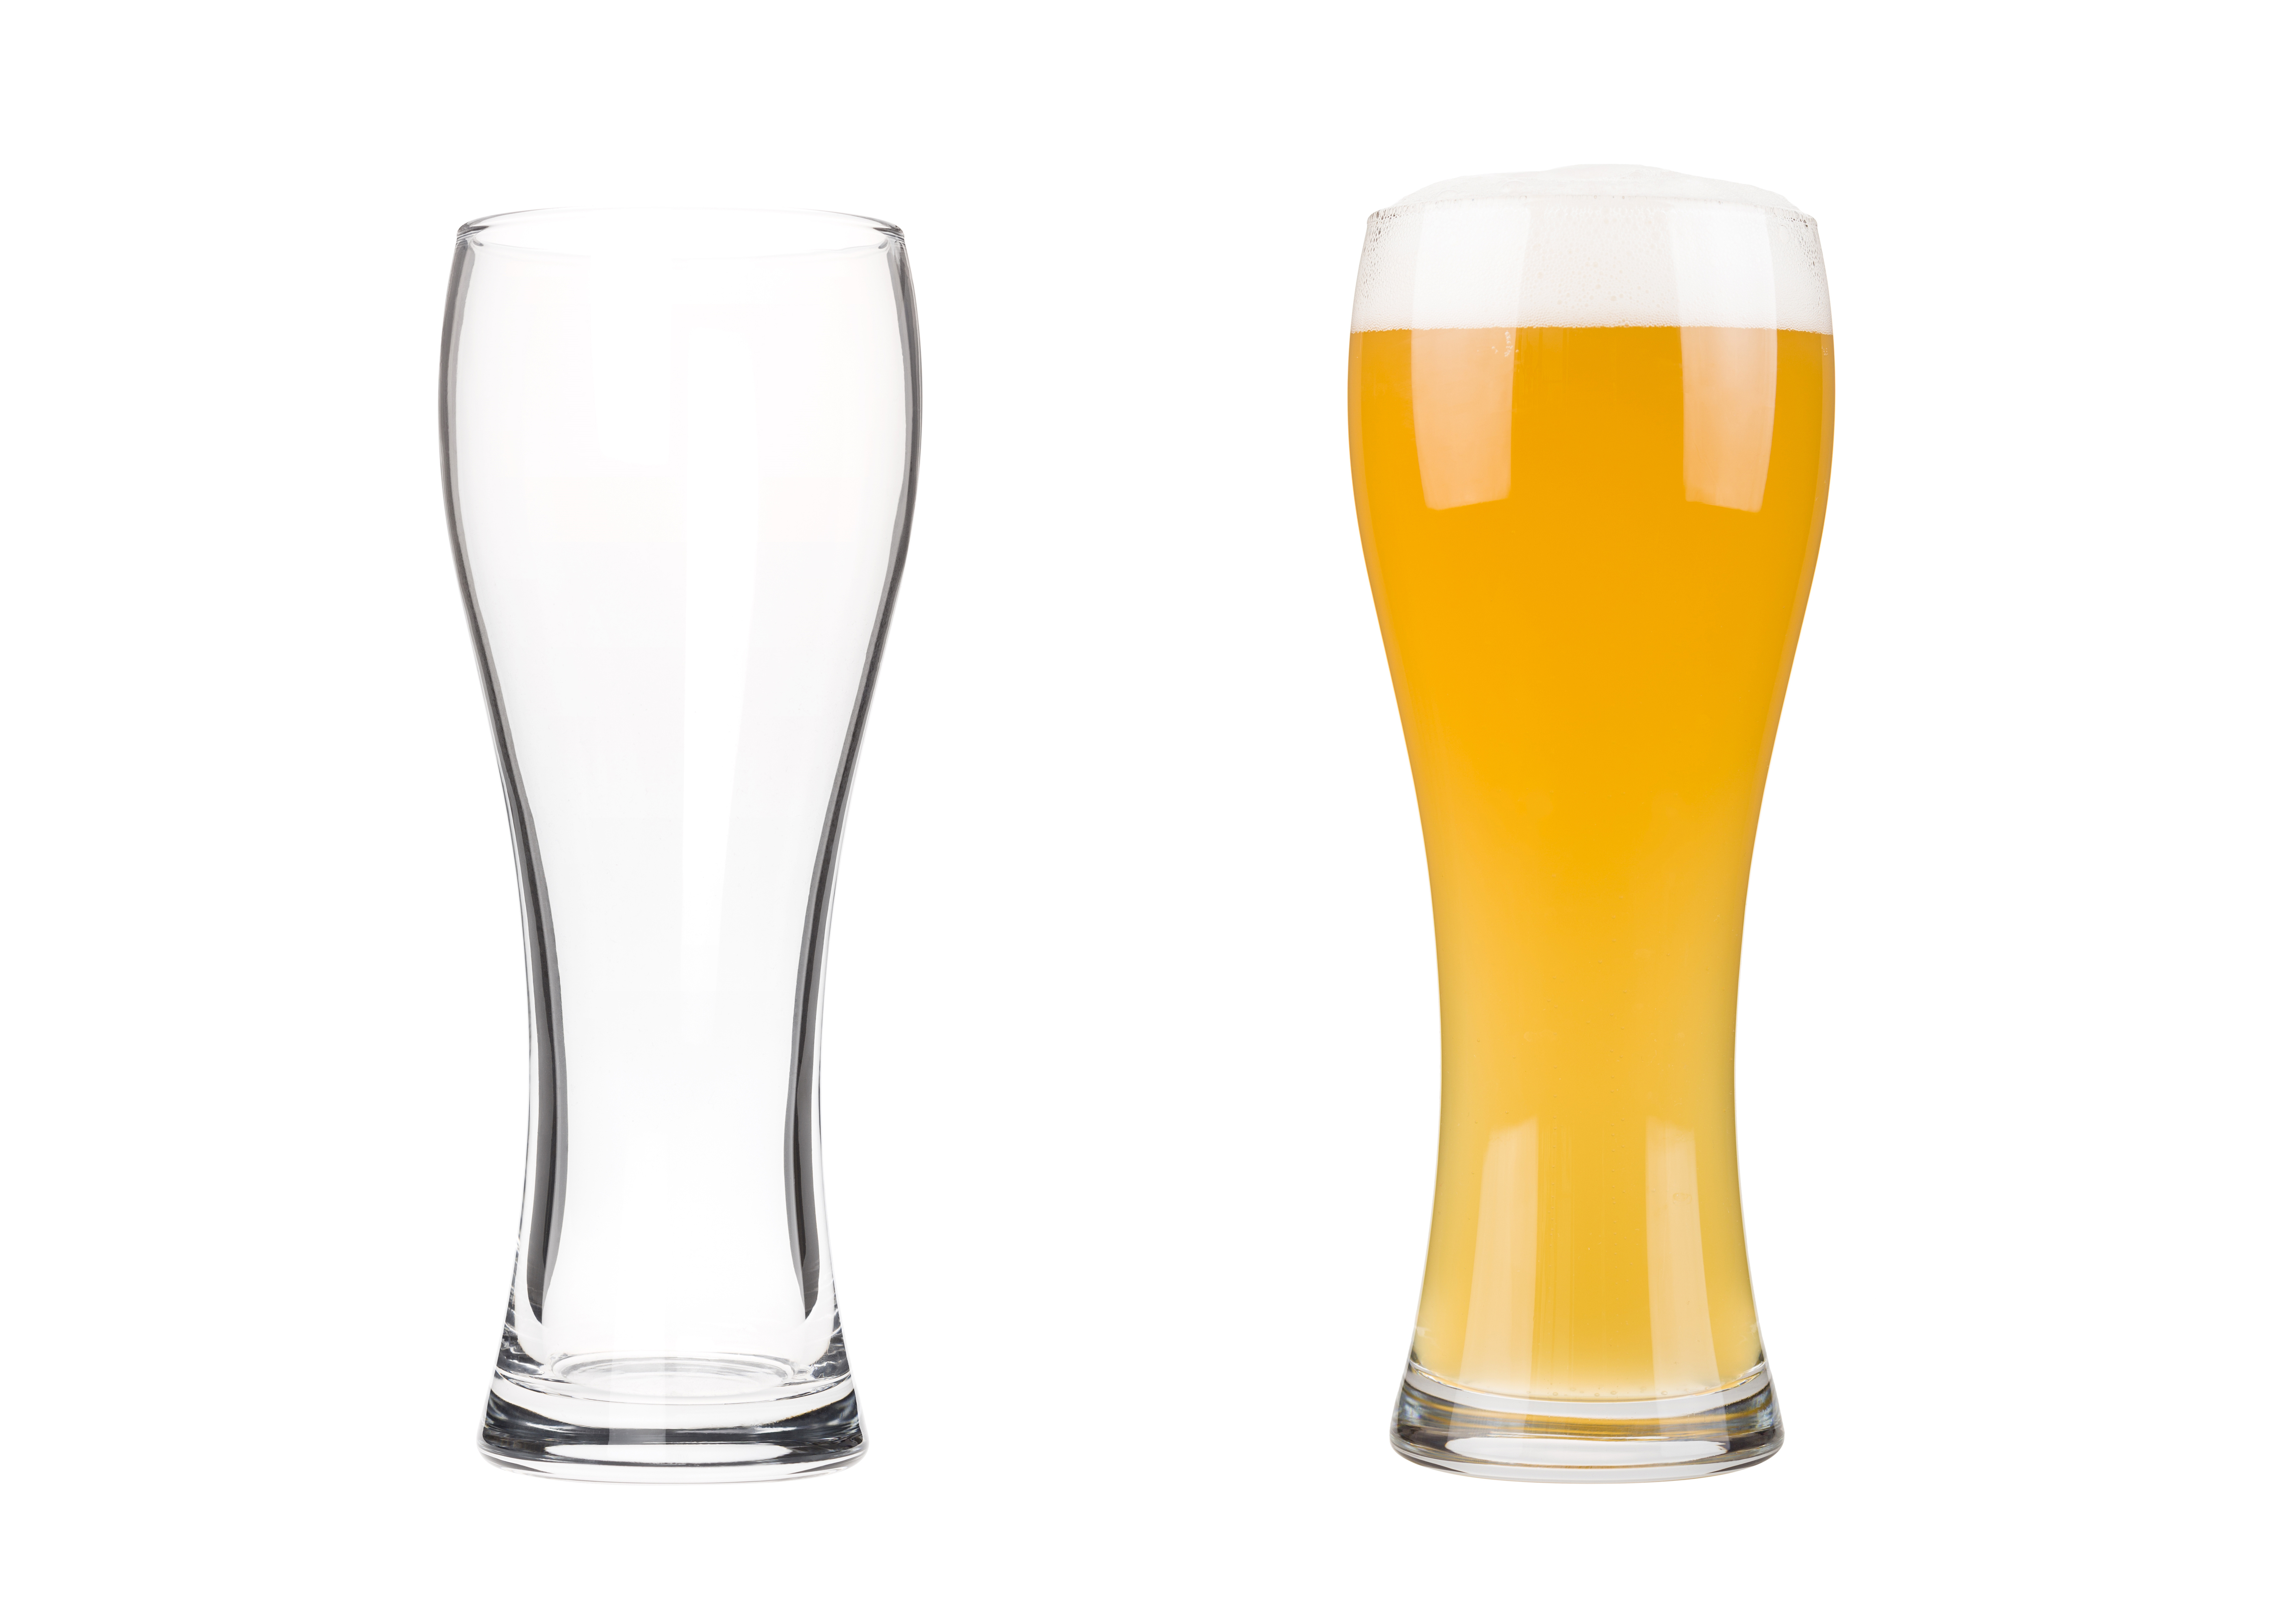 Full_glass_empty_glass_different_perspectives